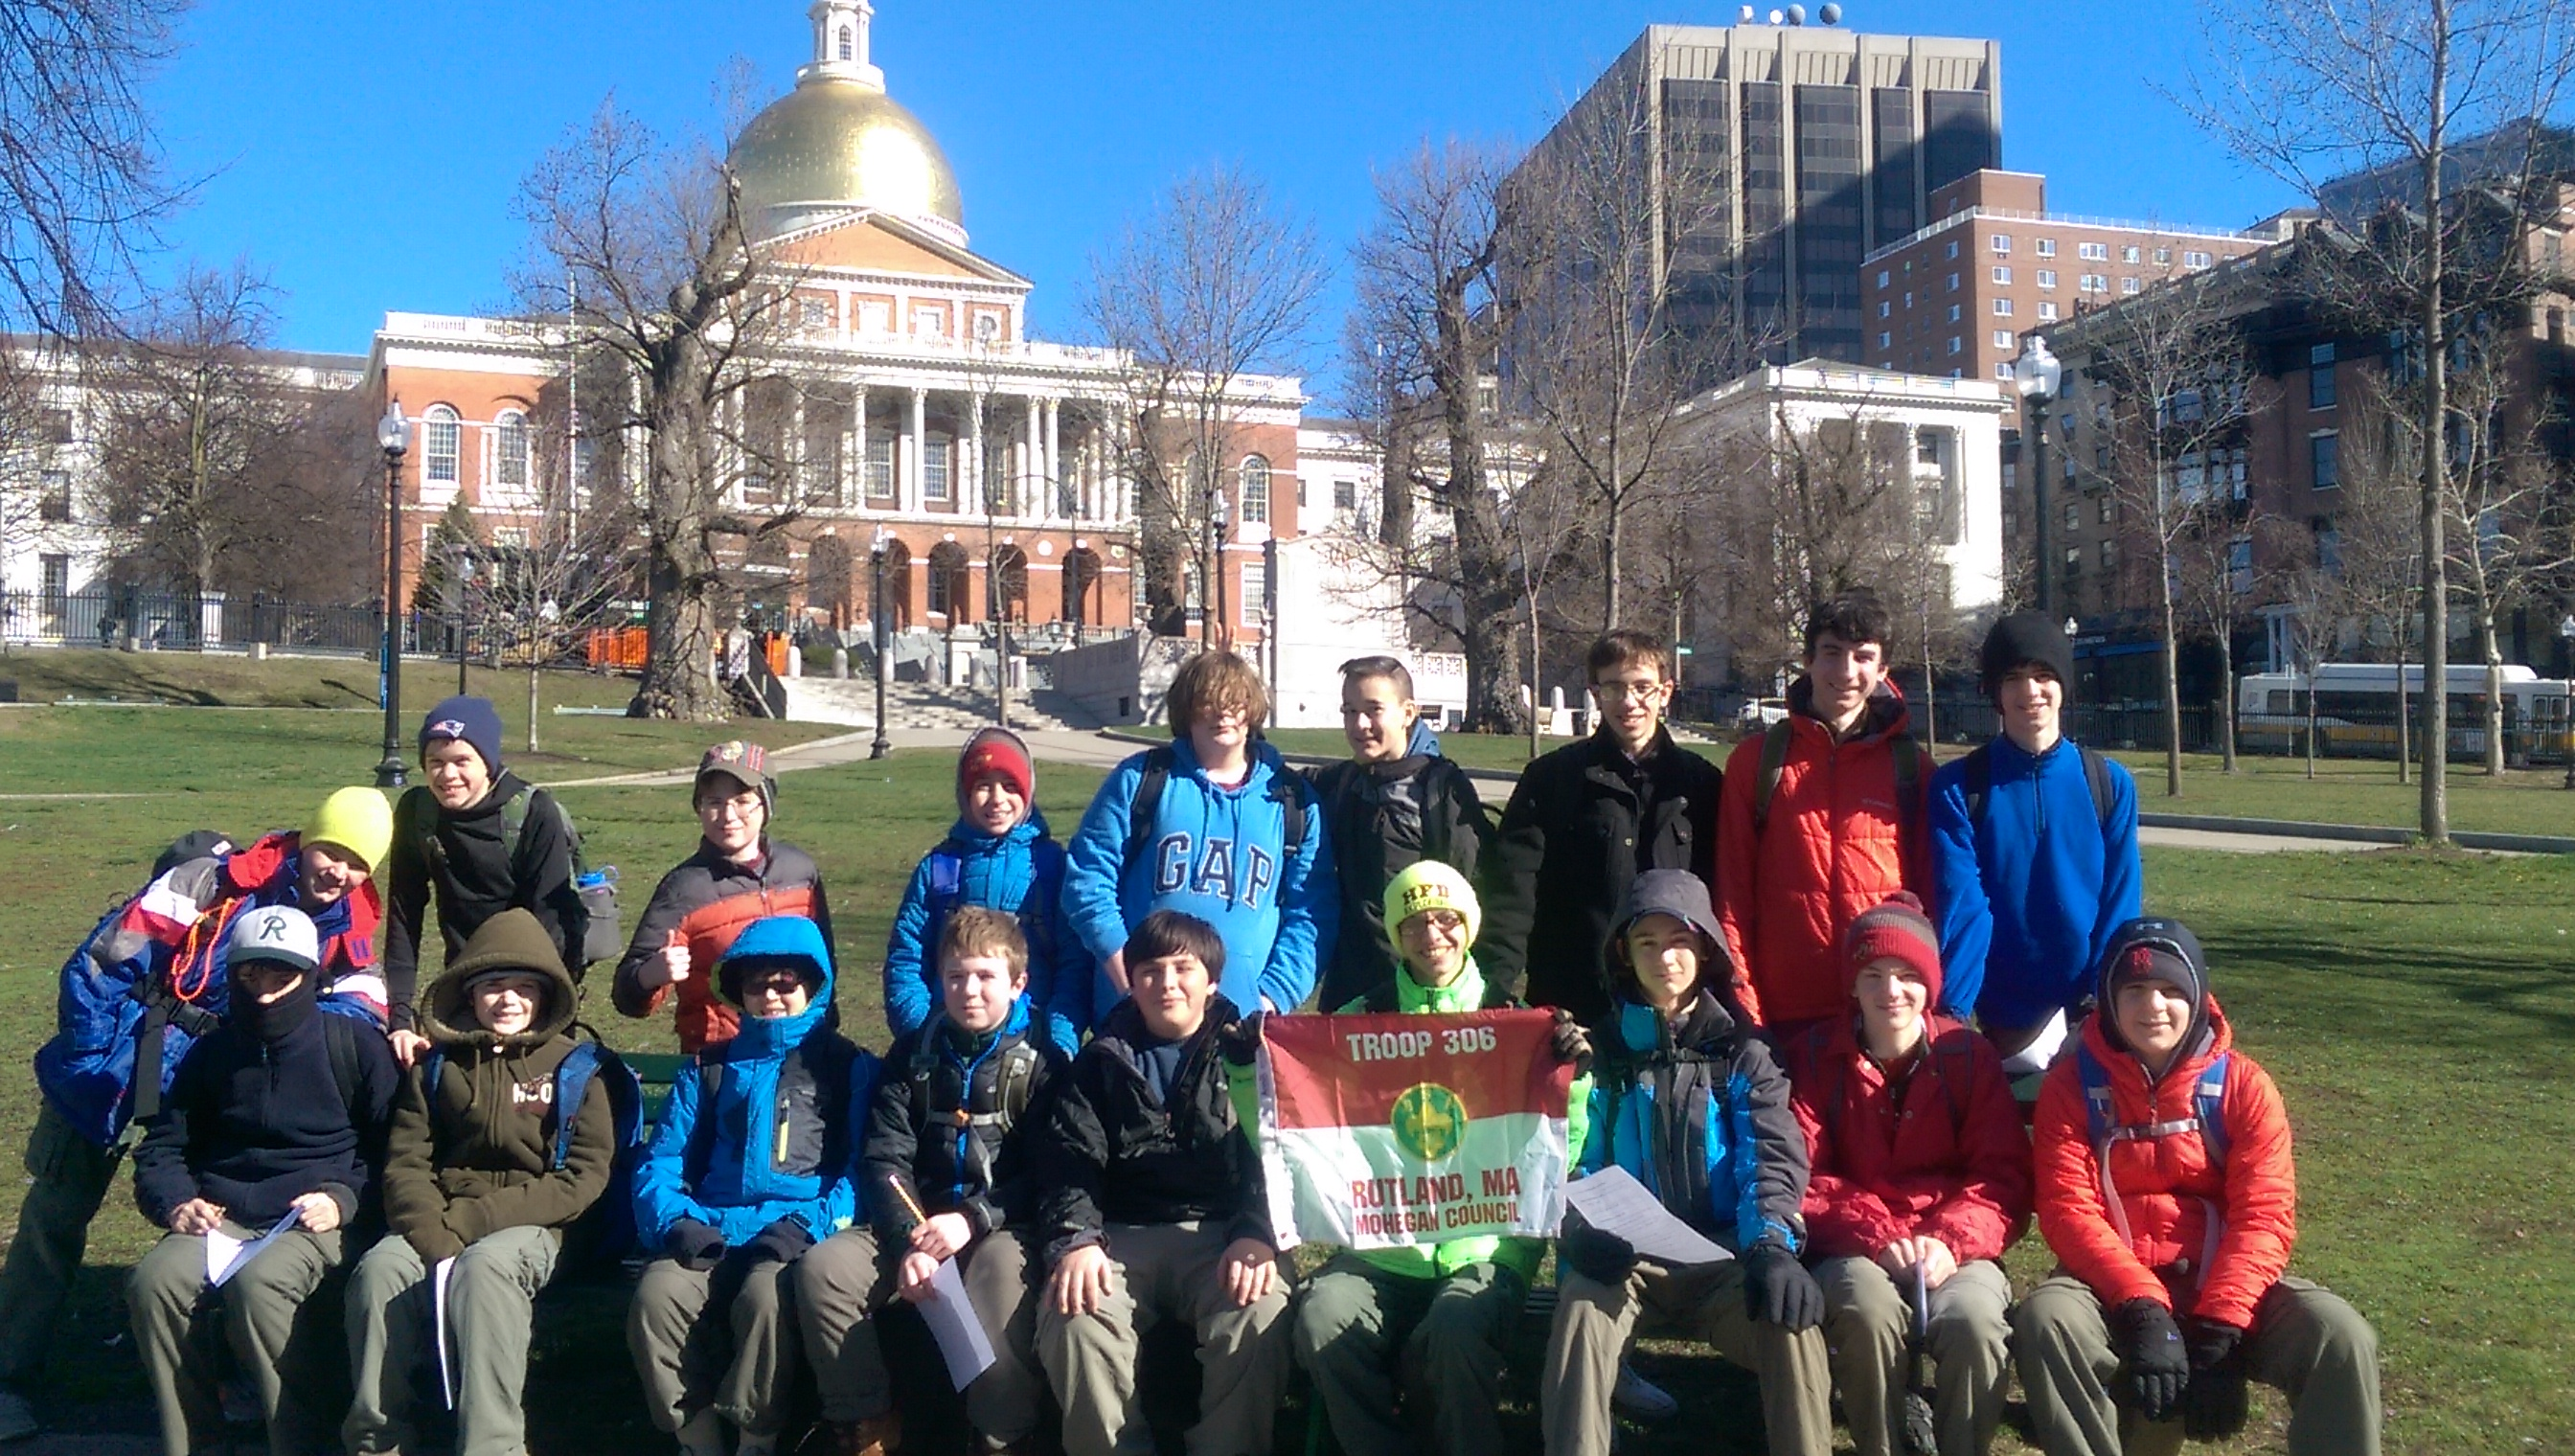 T306 Boston Common 19MAR16